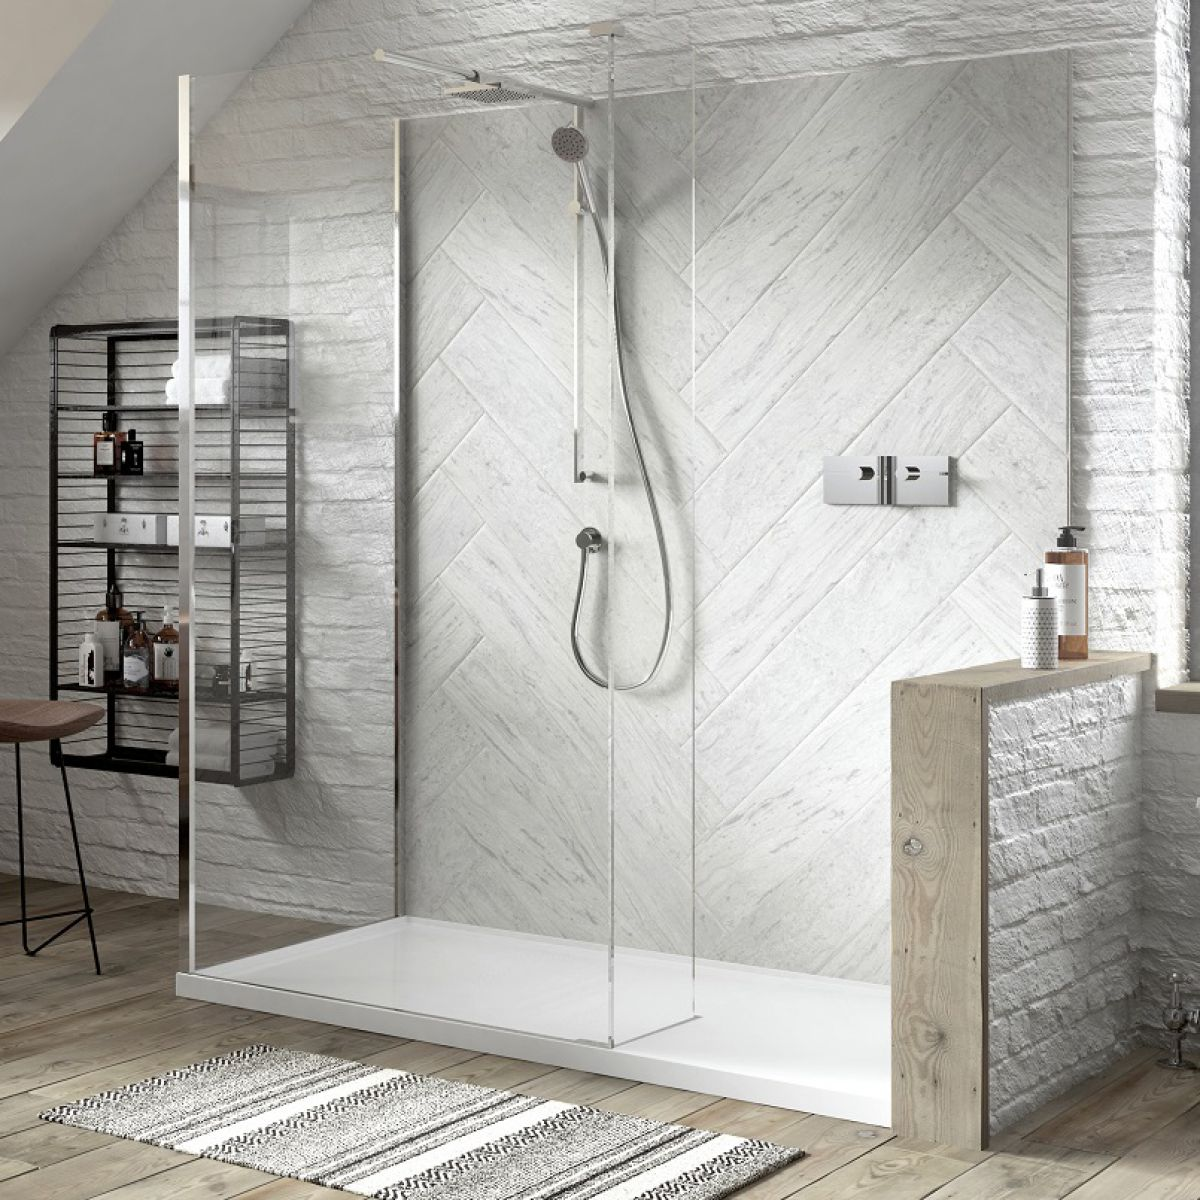 Genial Featured In The Image Above Matki Boutique Walk In Shower Enclosure